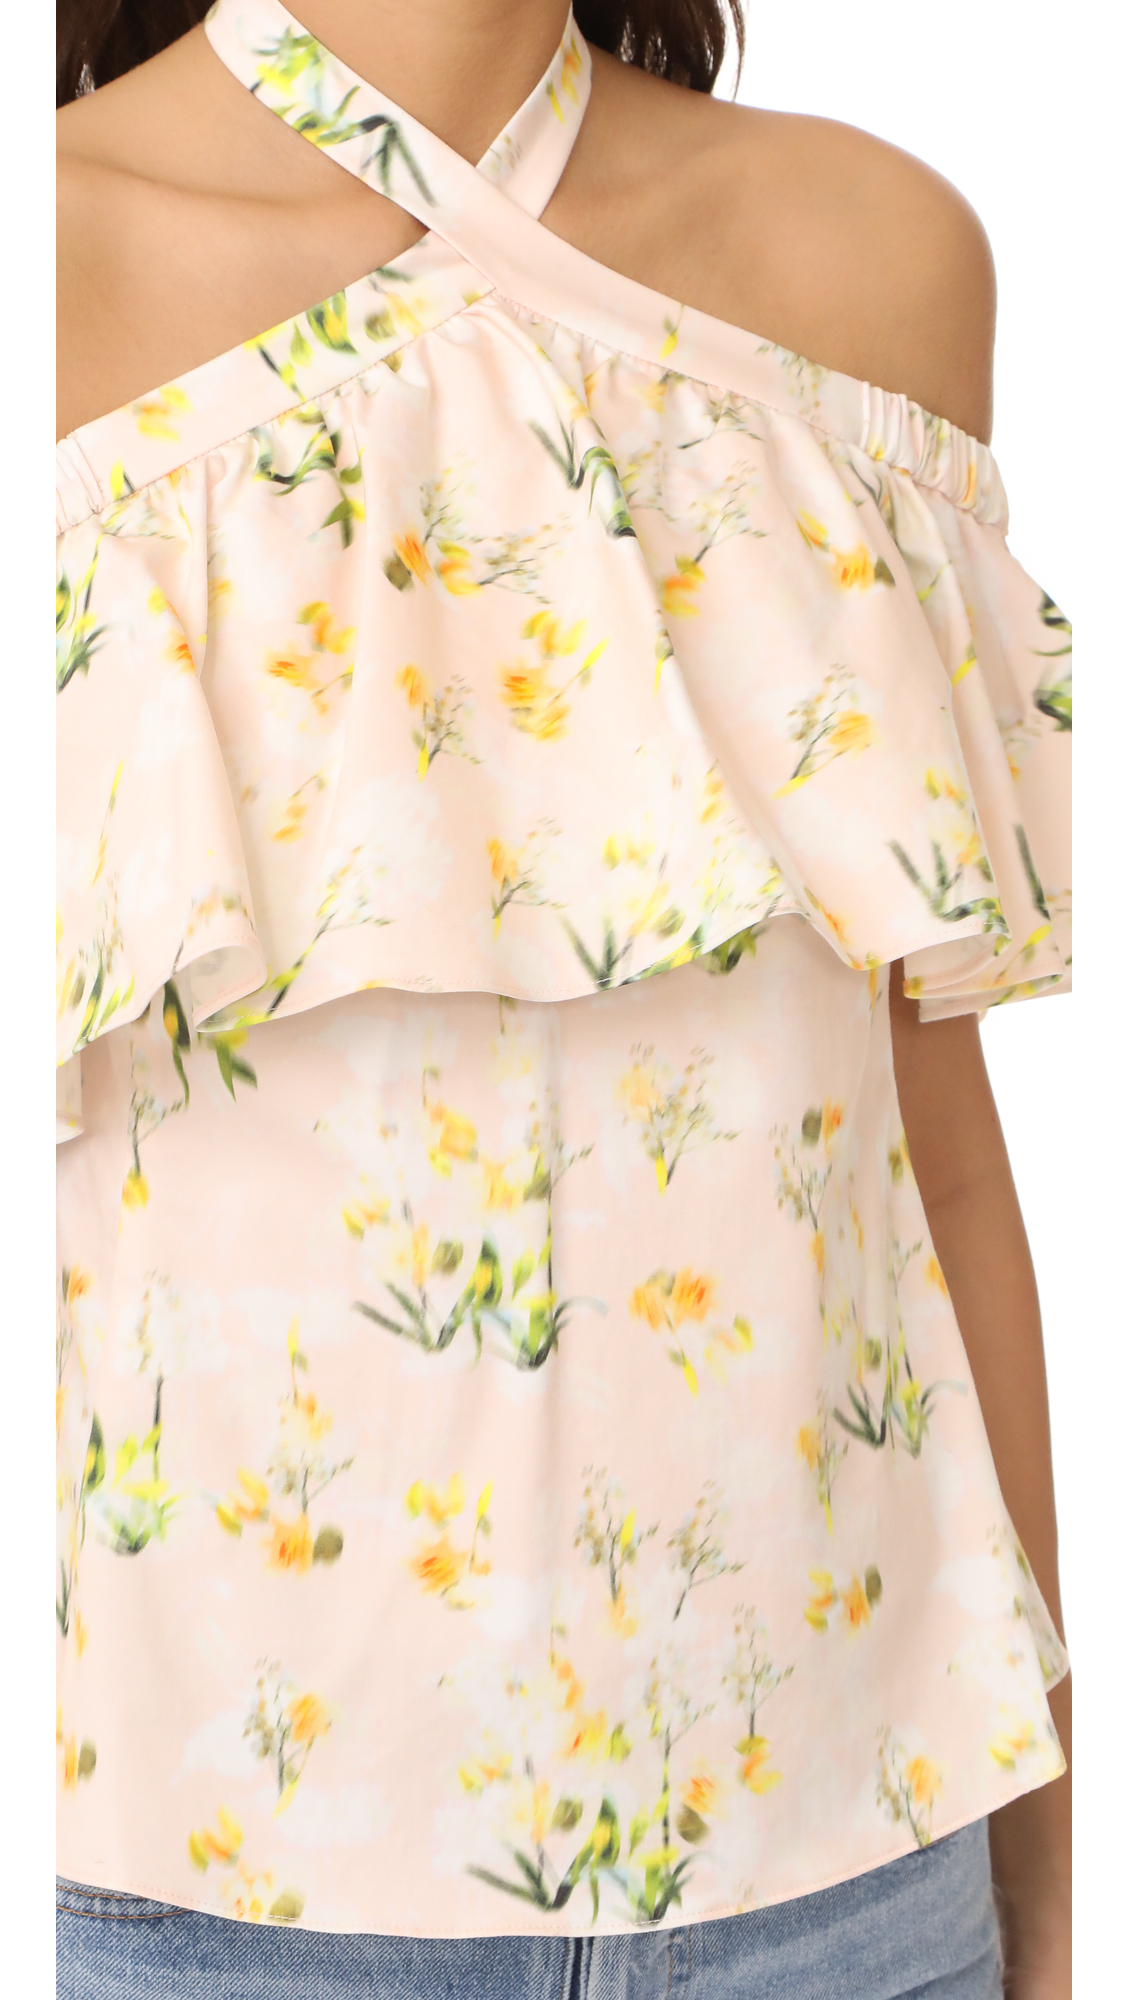 c8589eacbe7c7 Rebecca Taylor Off Shoulder Firefly Floral Top